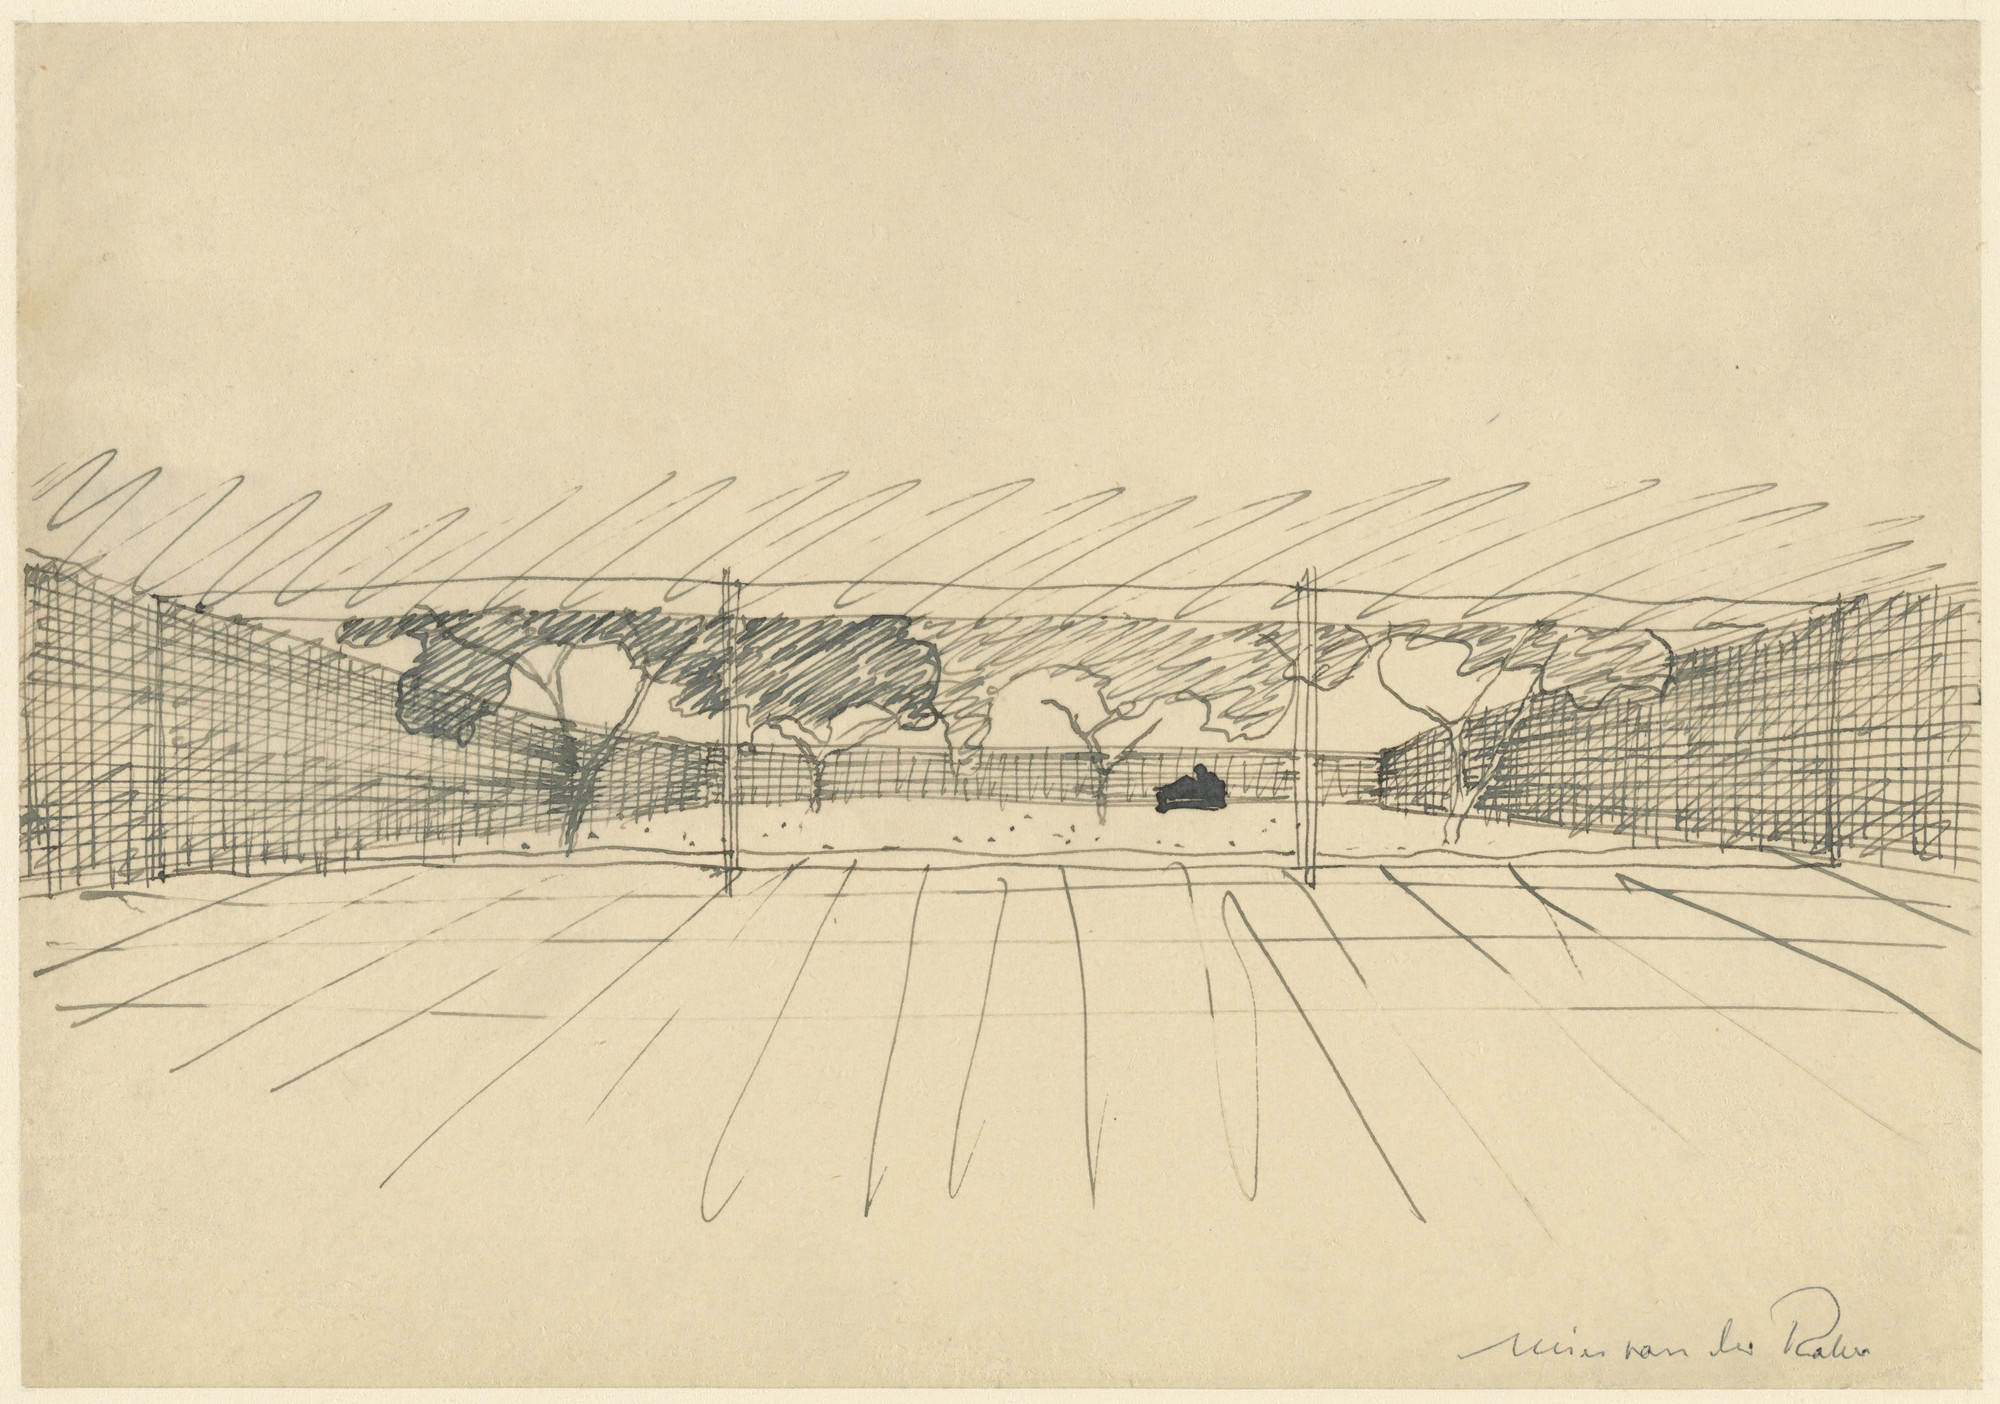 Ludwig Mies van der Rohe. Court House, project, Perspective sketch with mural. 1934